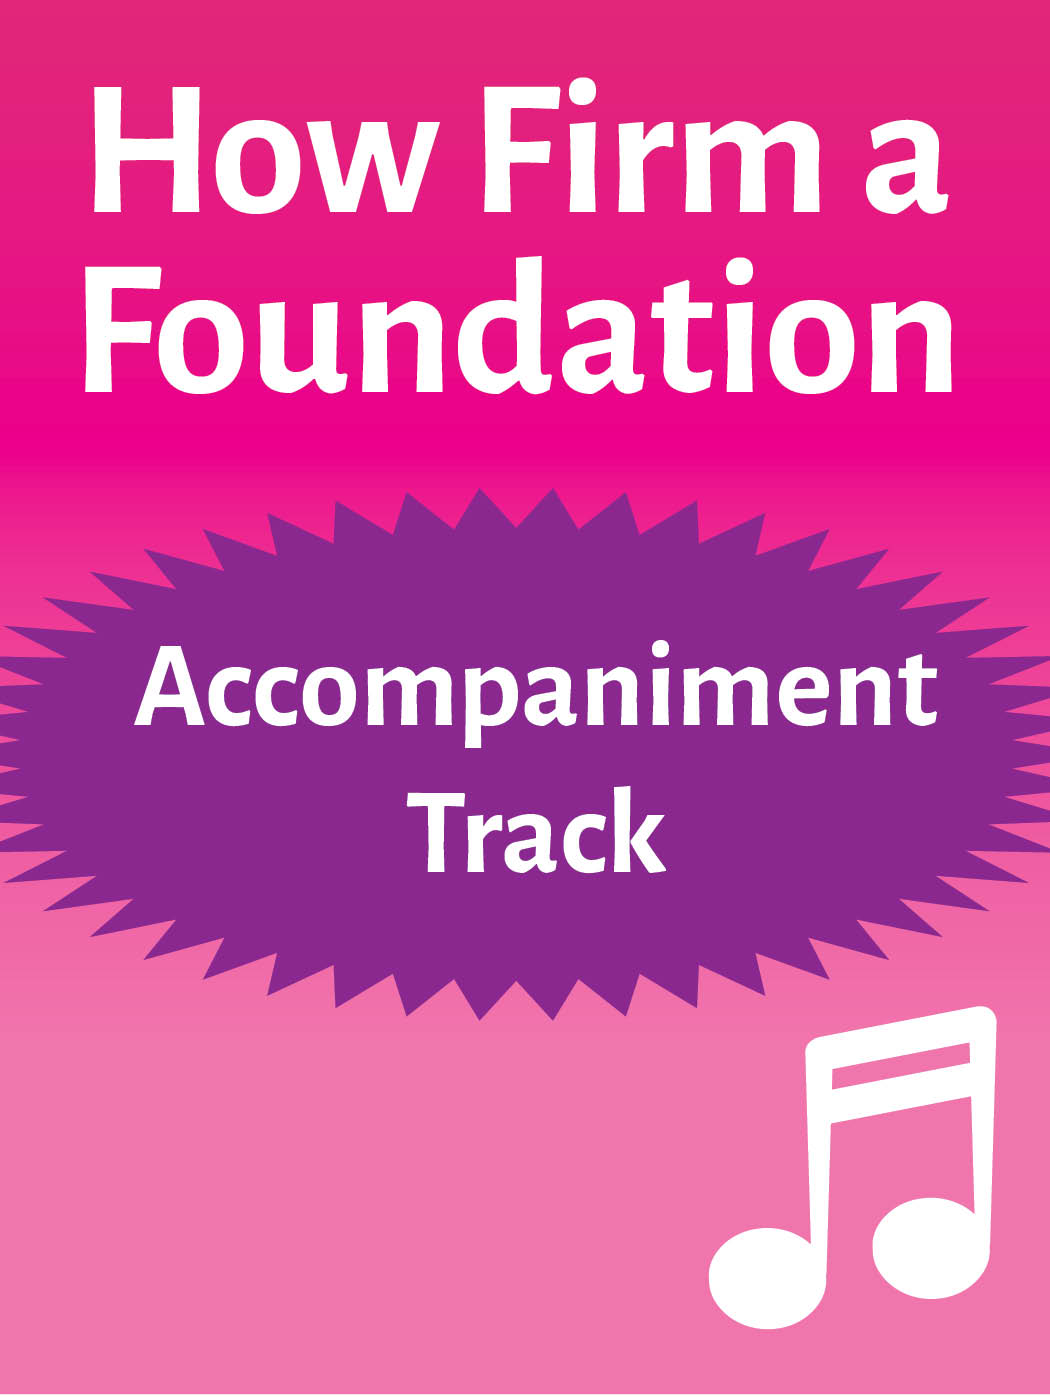 How Firm a Foundation – accompaniment track (mp3 download)